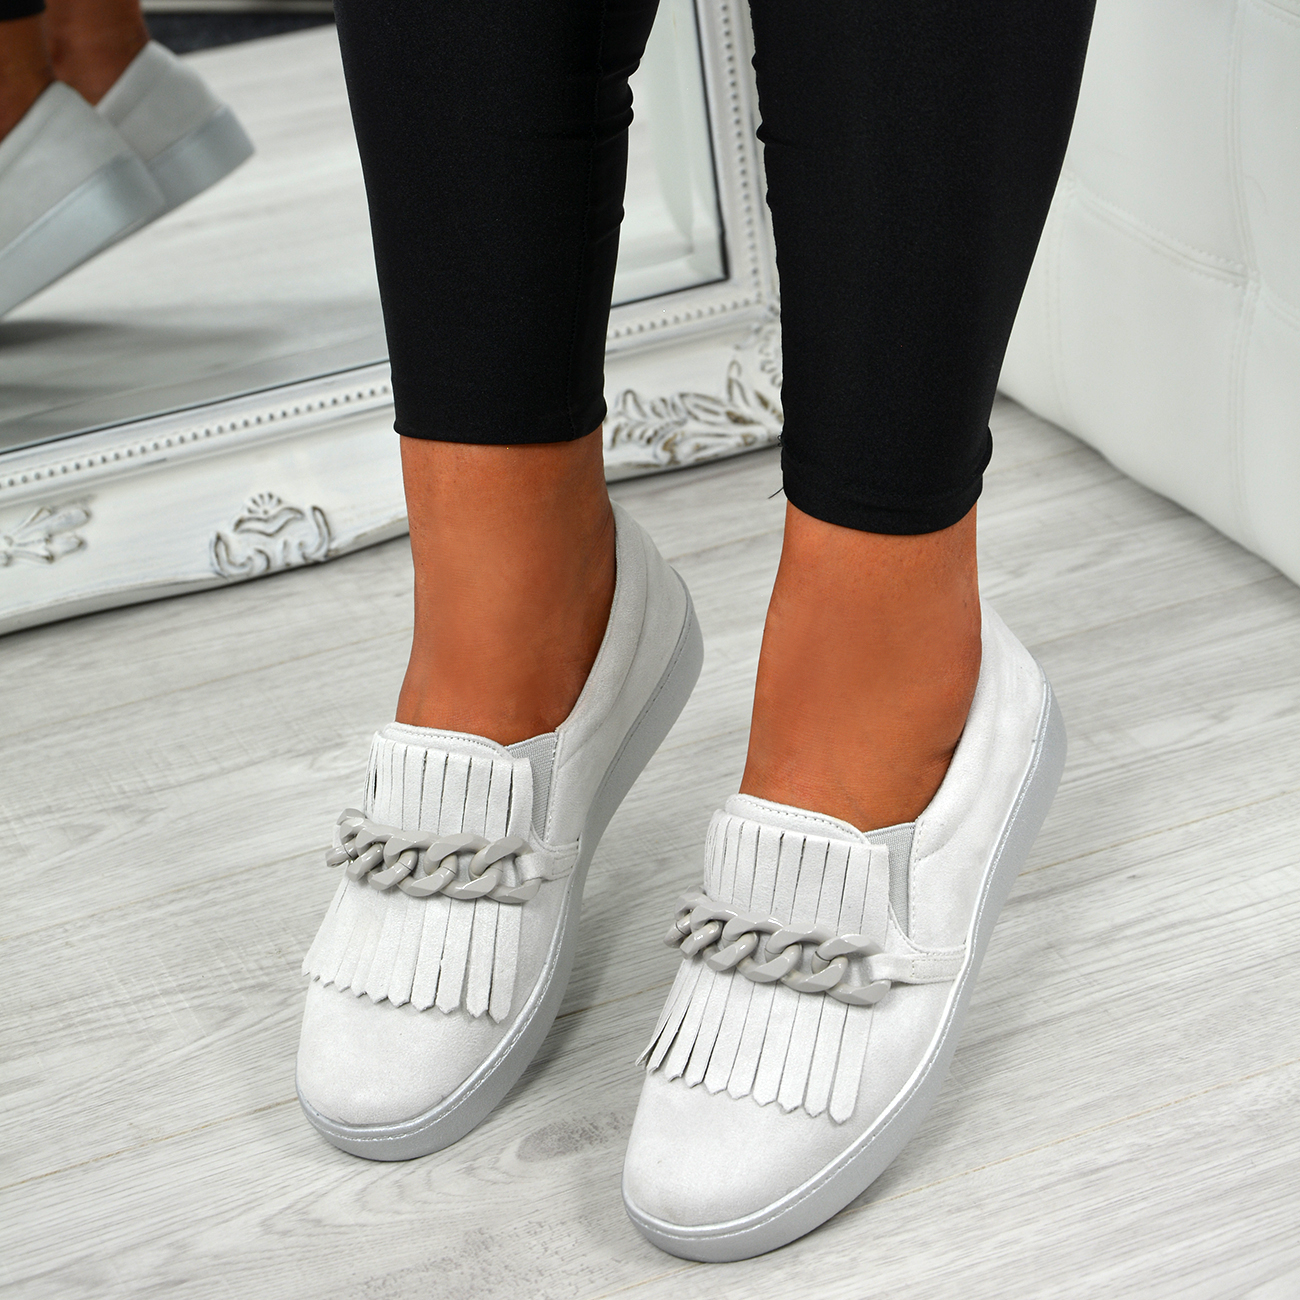 LADIES-WOMENS-SLIP-ON-TRAINERS-CHAIN-FRINGE-SNEAKERS-COMFY-SHOES-SIZES